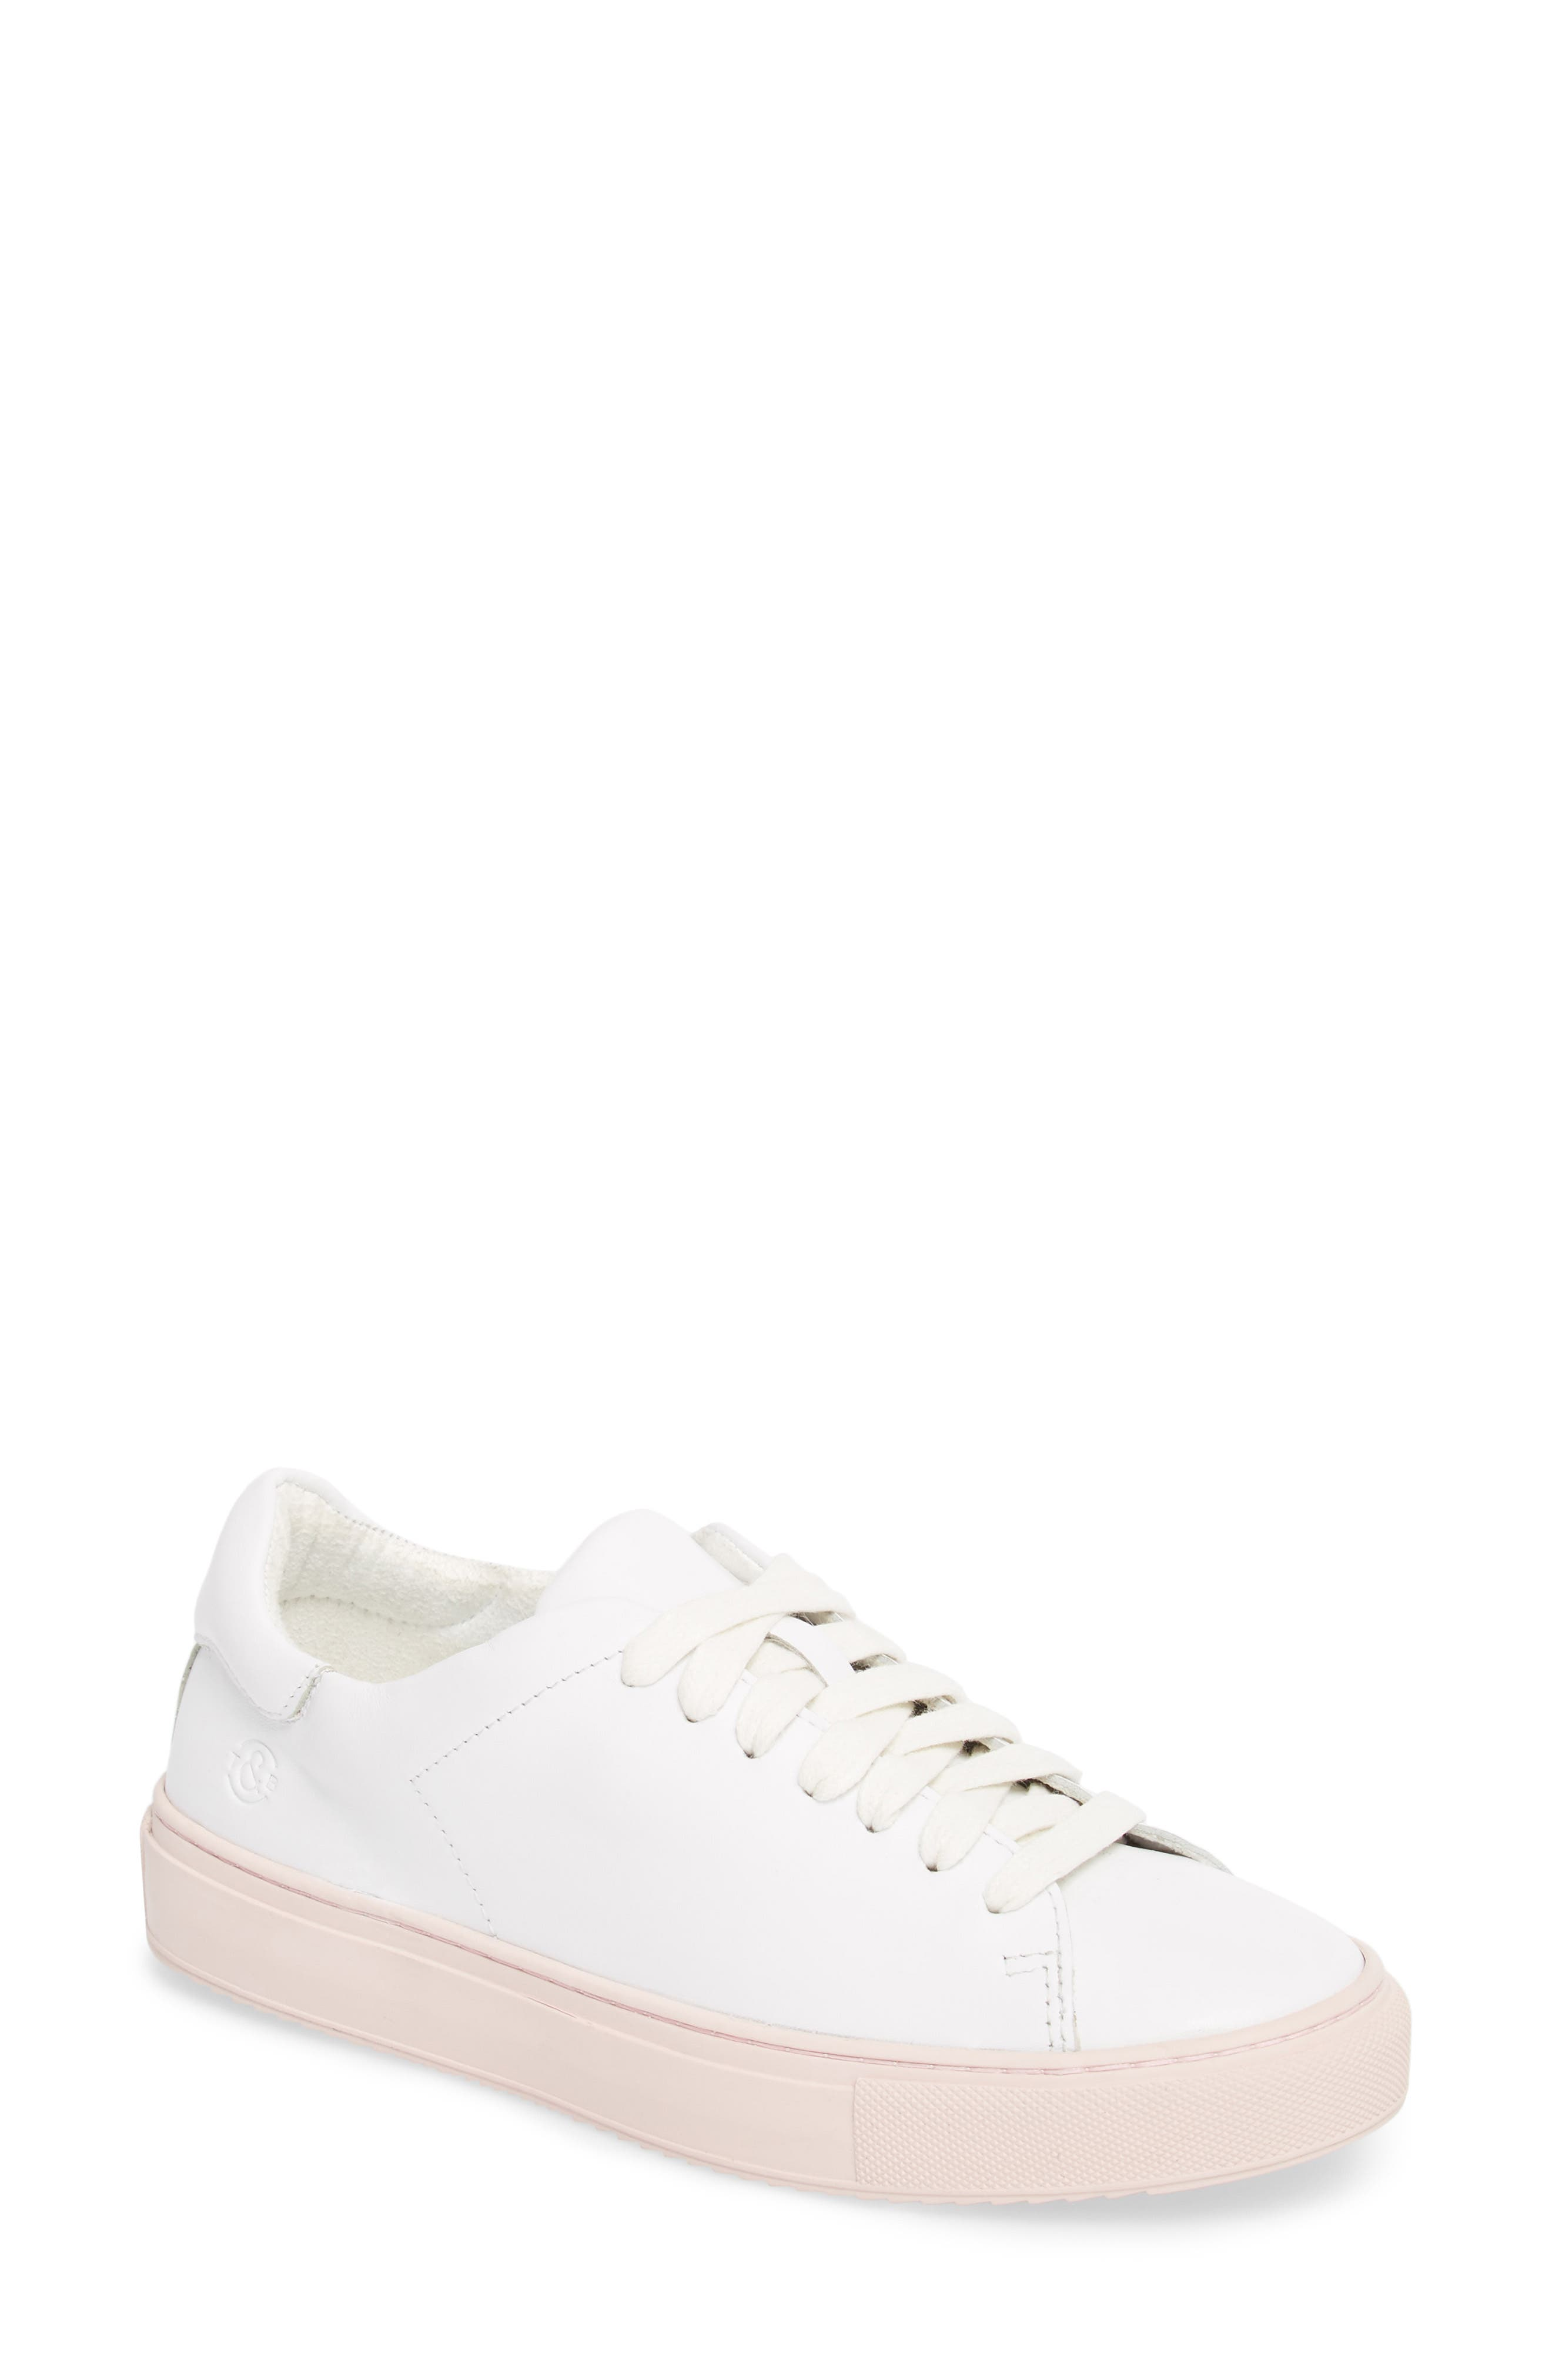 Cassidy Sneaker,                         Main,                         color, 100